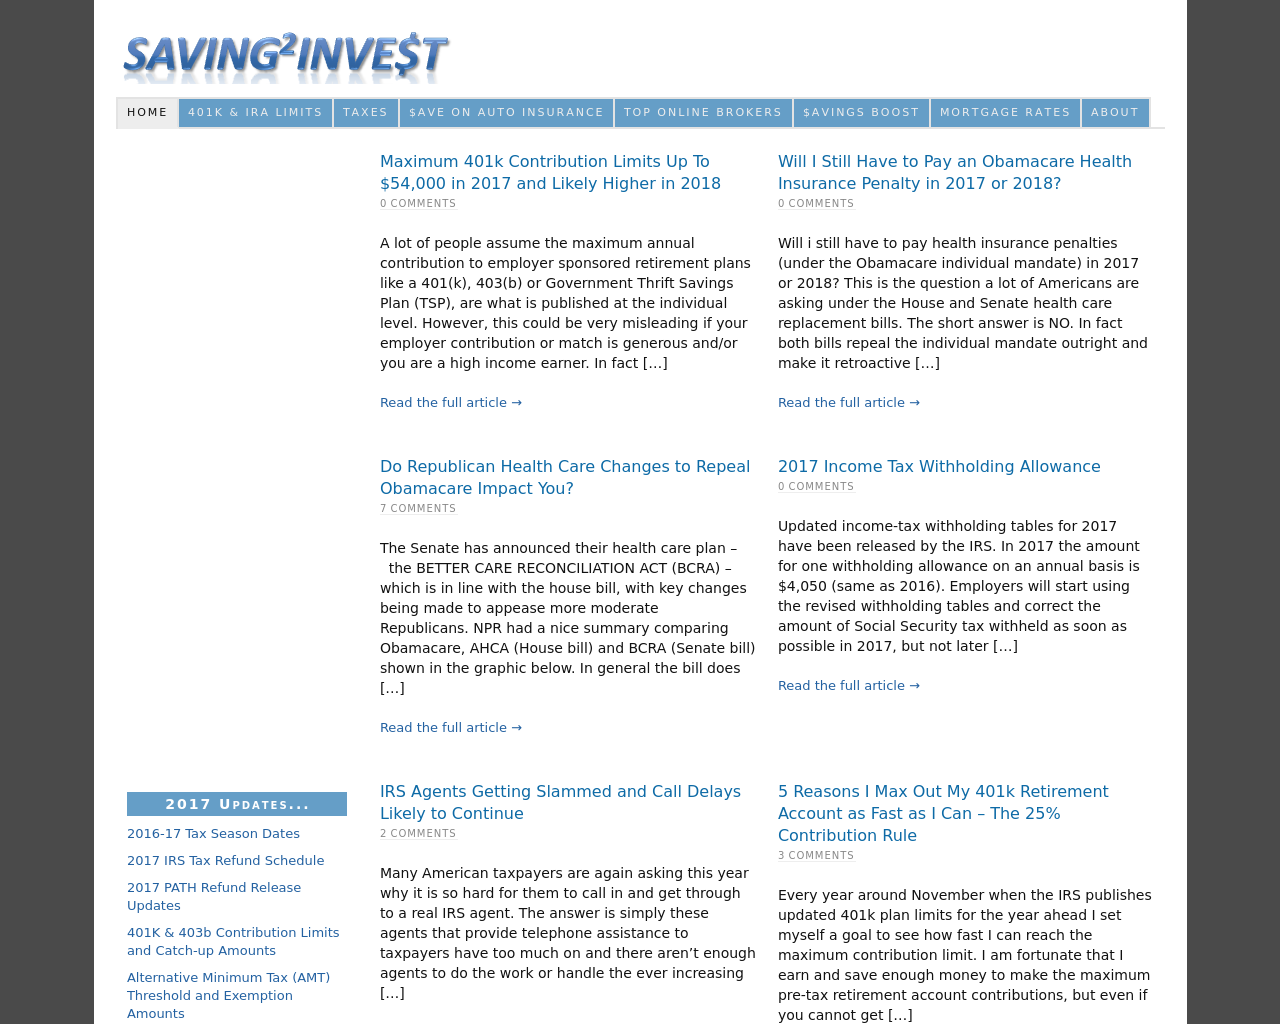 Saving-To-Invest-Advertising-Reviews-Pricing